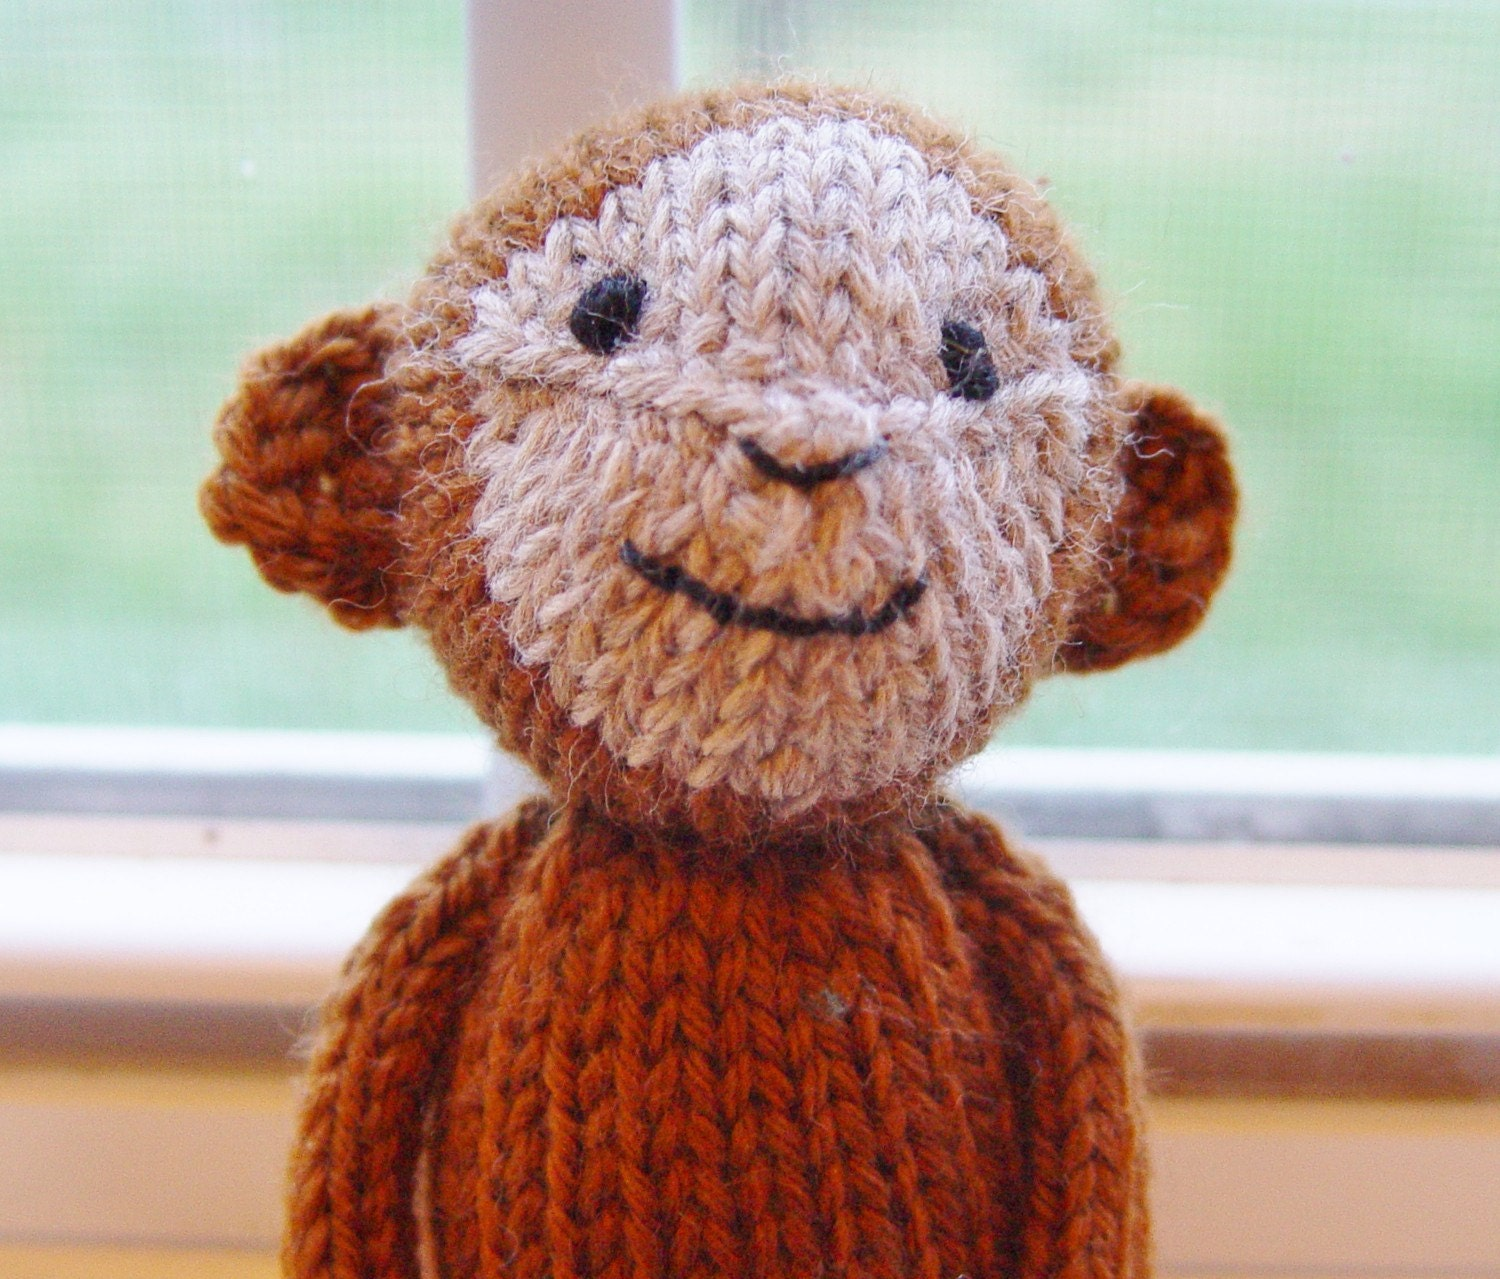 Knitting Patterns Monkey   Catalog of Patterns